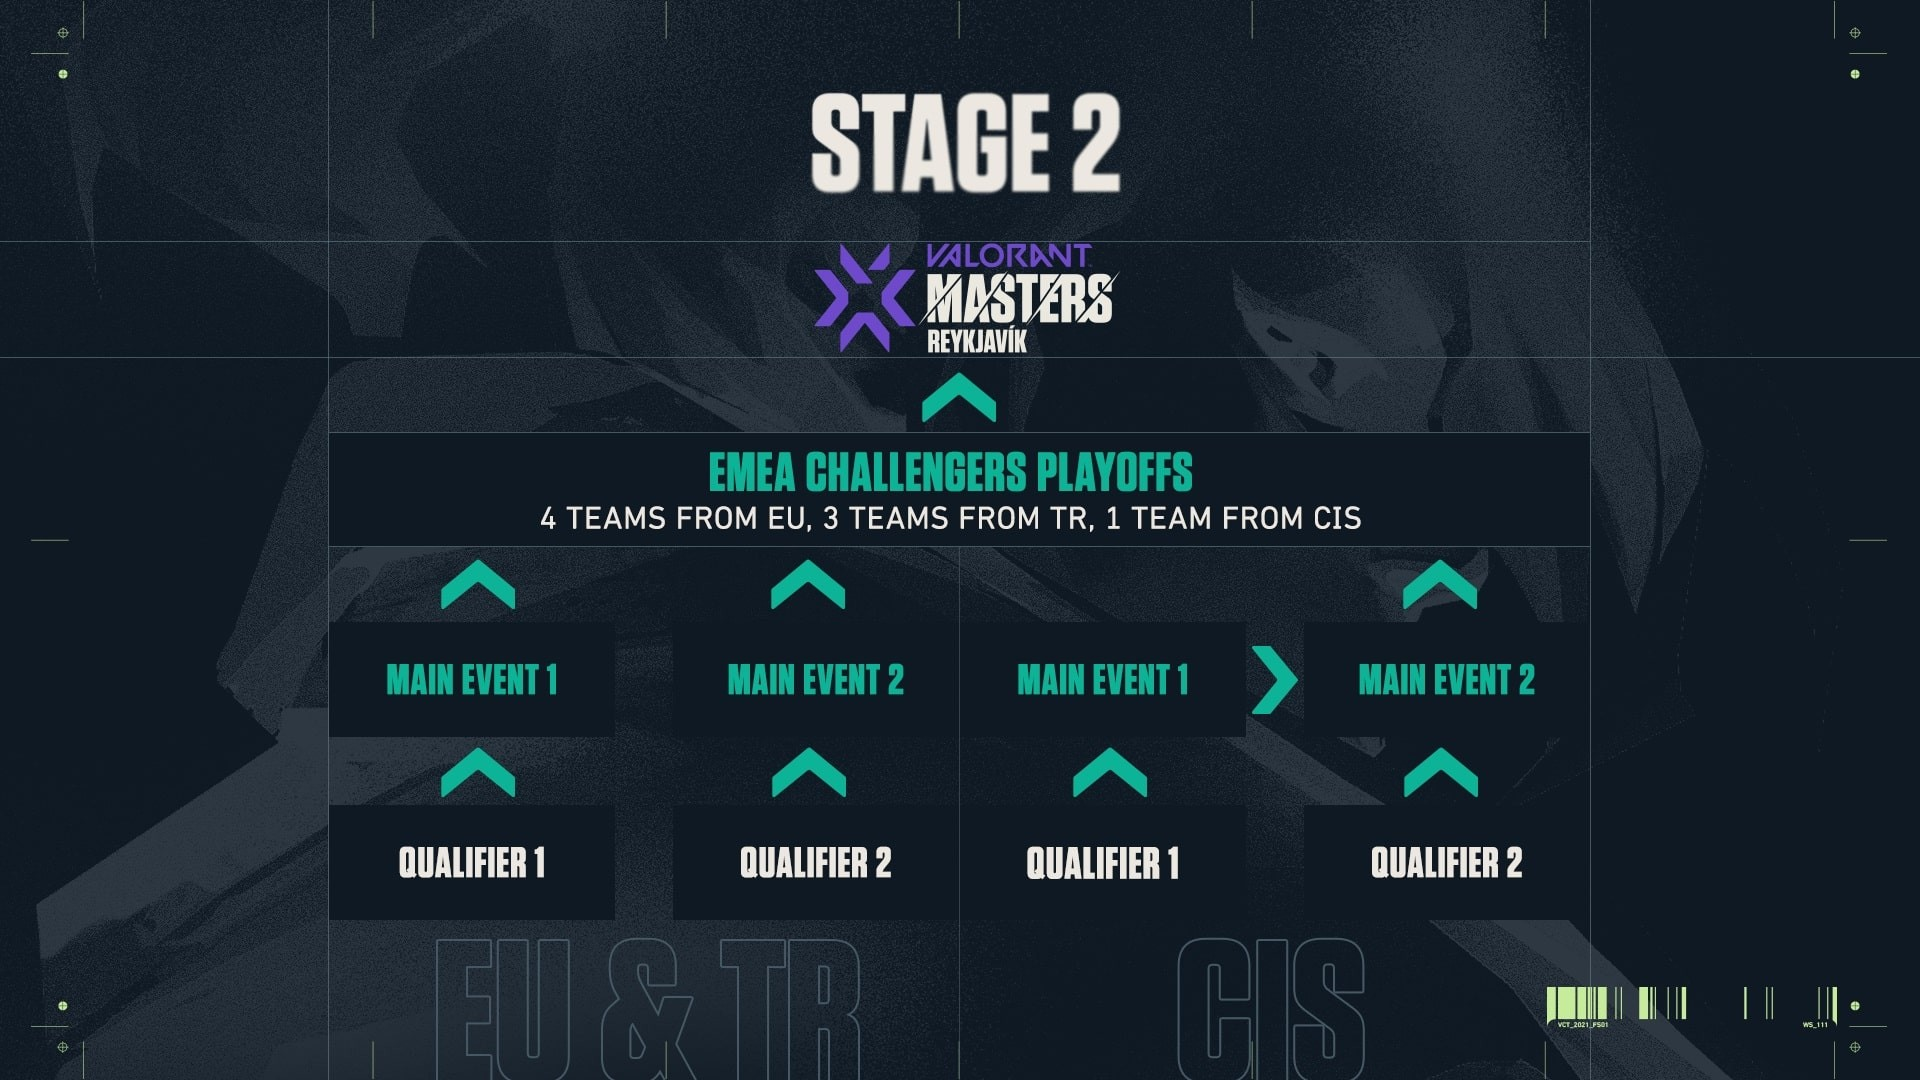 The road map of Stage 2 shows the qualification processes for EU, TR and CIS.